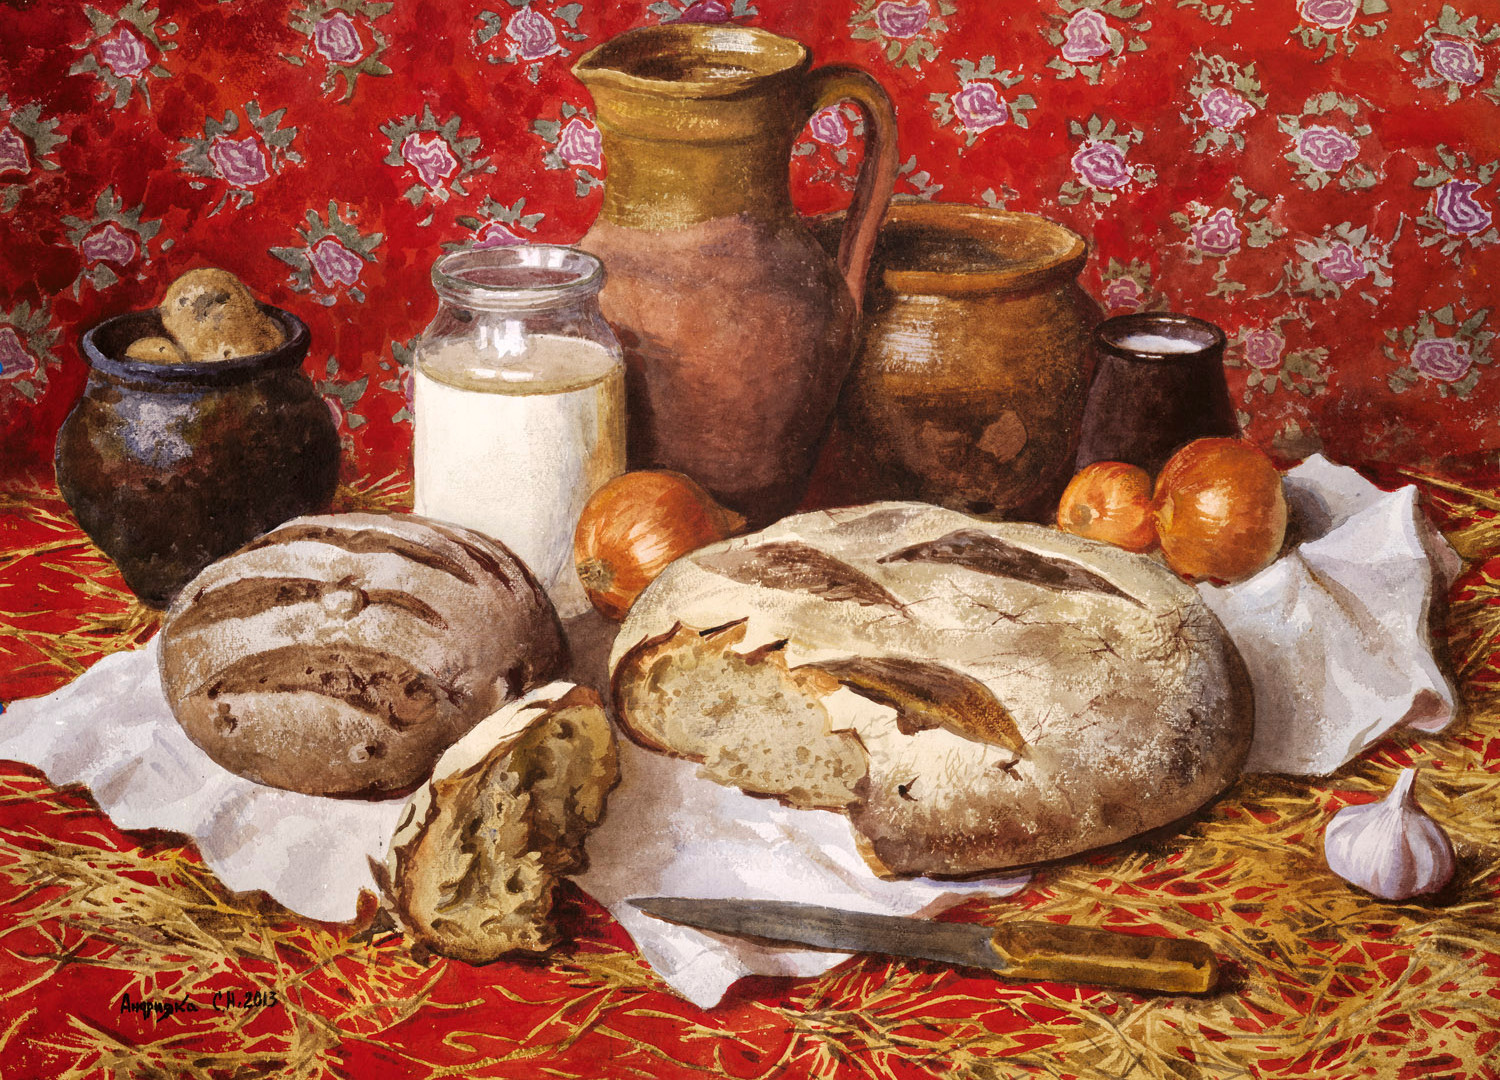 The daily bread, 2013